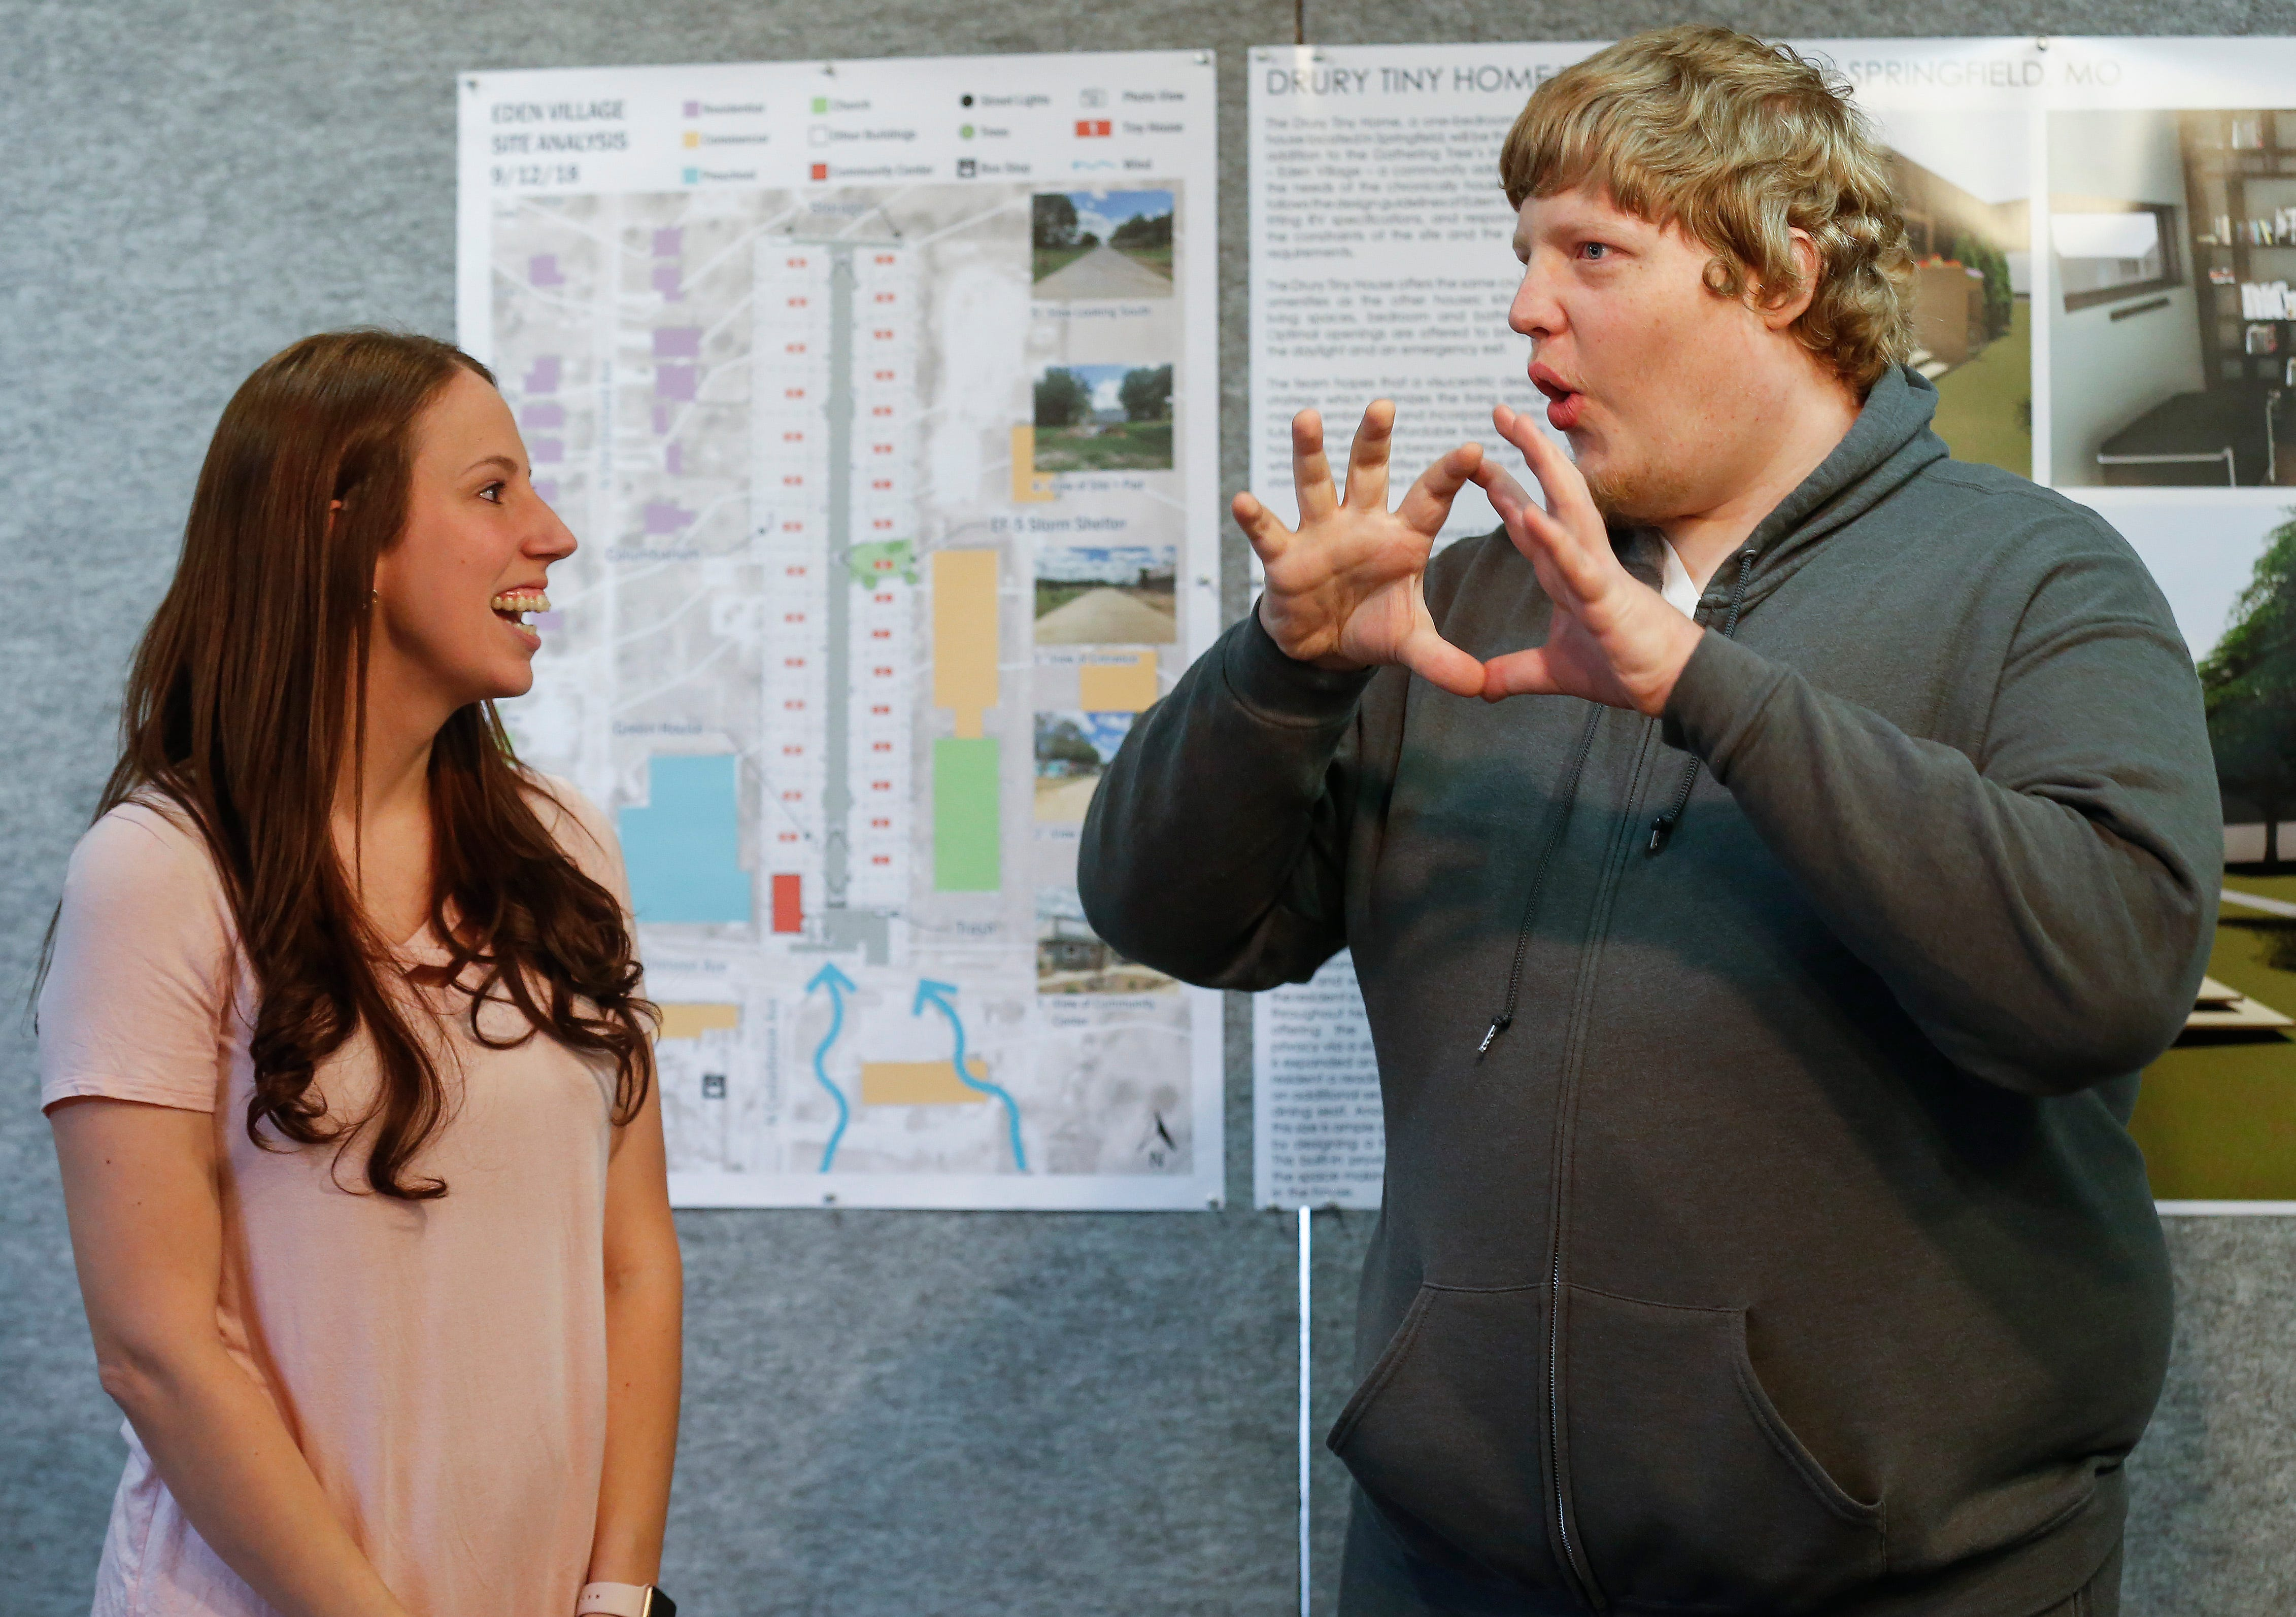 Mel Woods, right, uses sign language to talk with his friend and interpreter Tobey Wilkerson during a check presentation at Drury University for the final home in eden Village. Woods will be the final resident in the tiny home community.